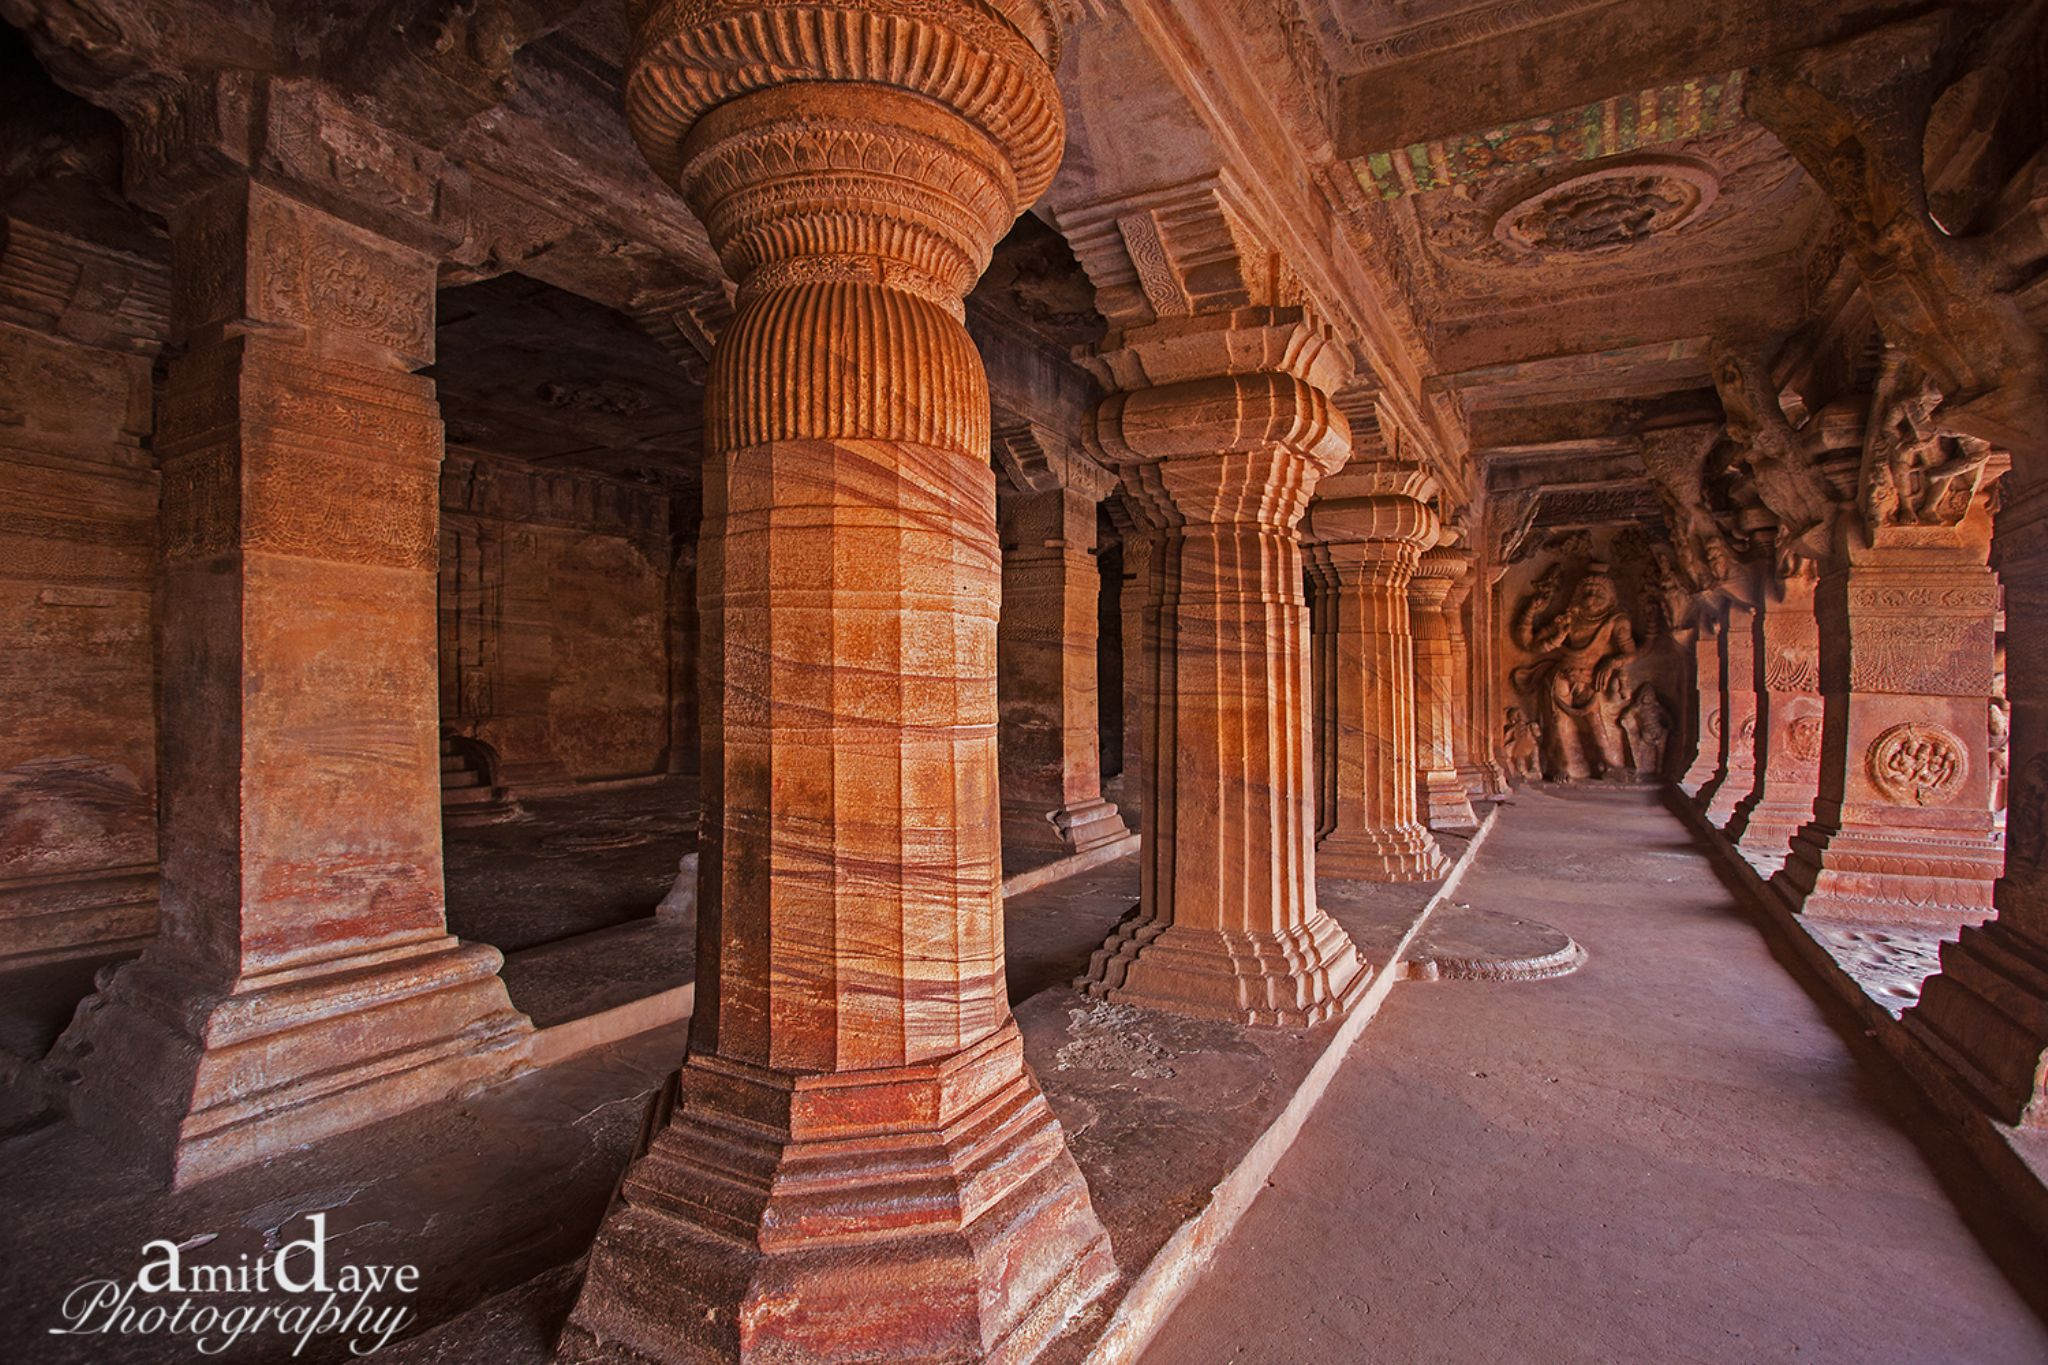 Cave Temples Badami by amit dave